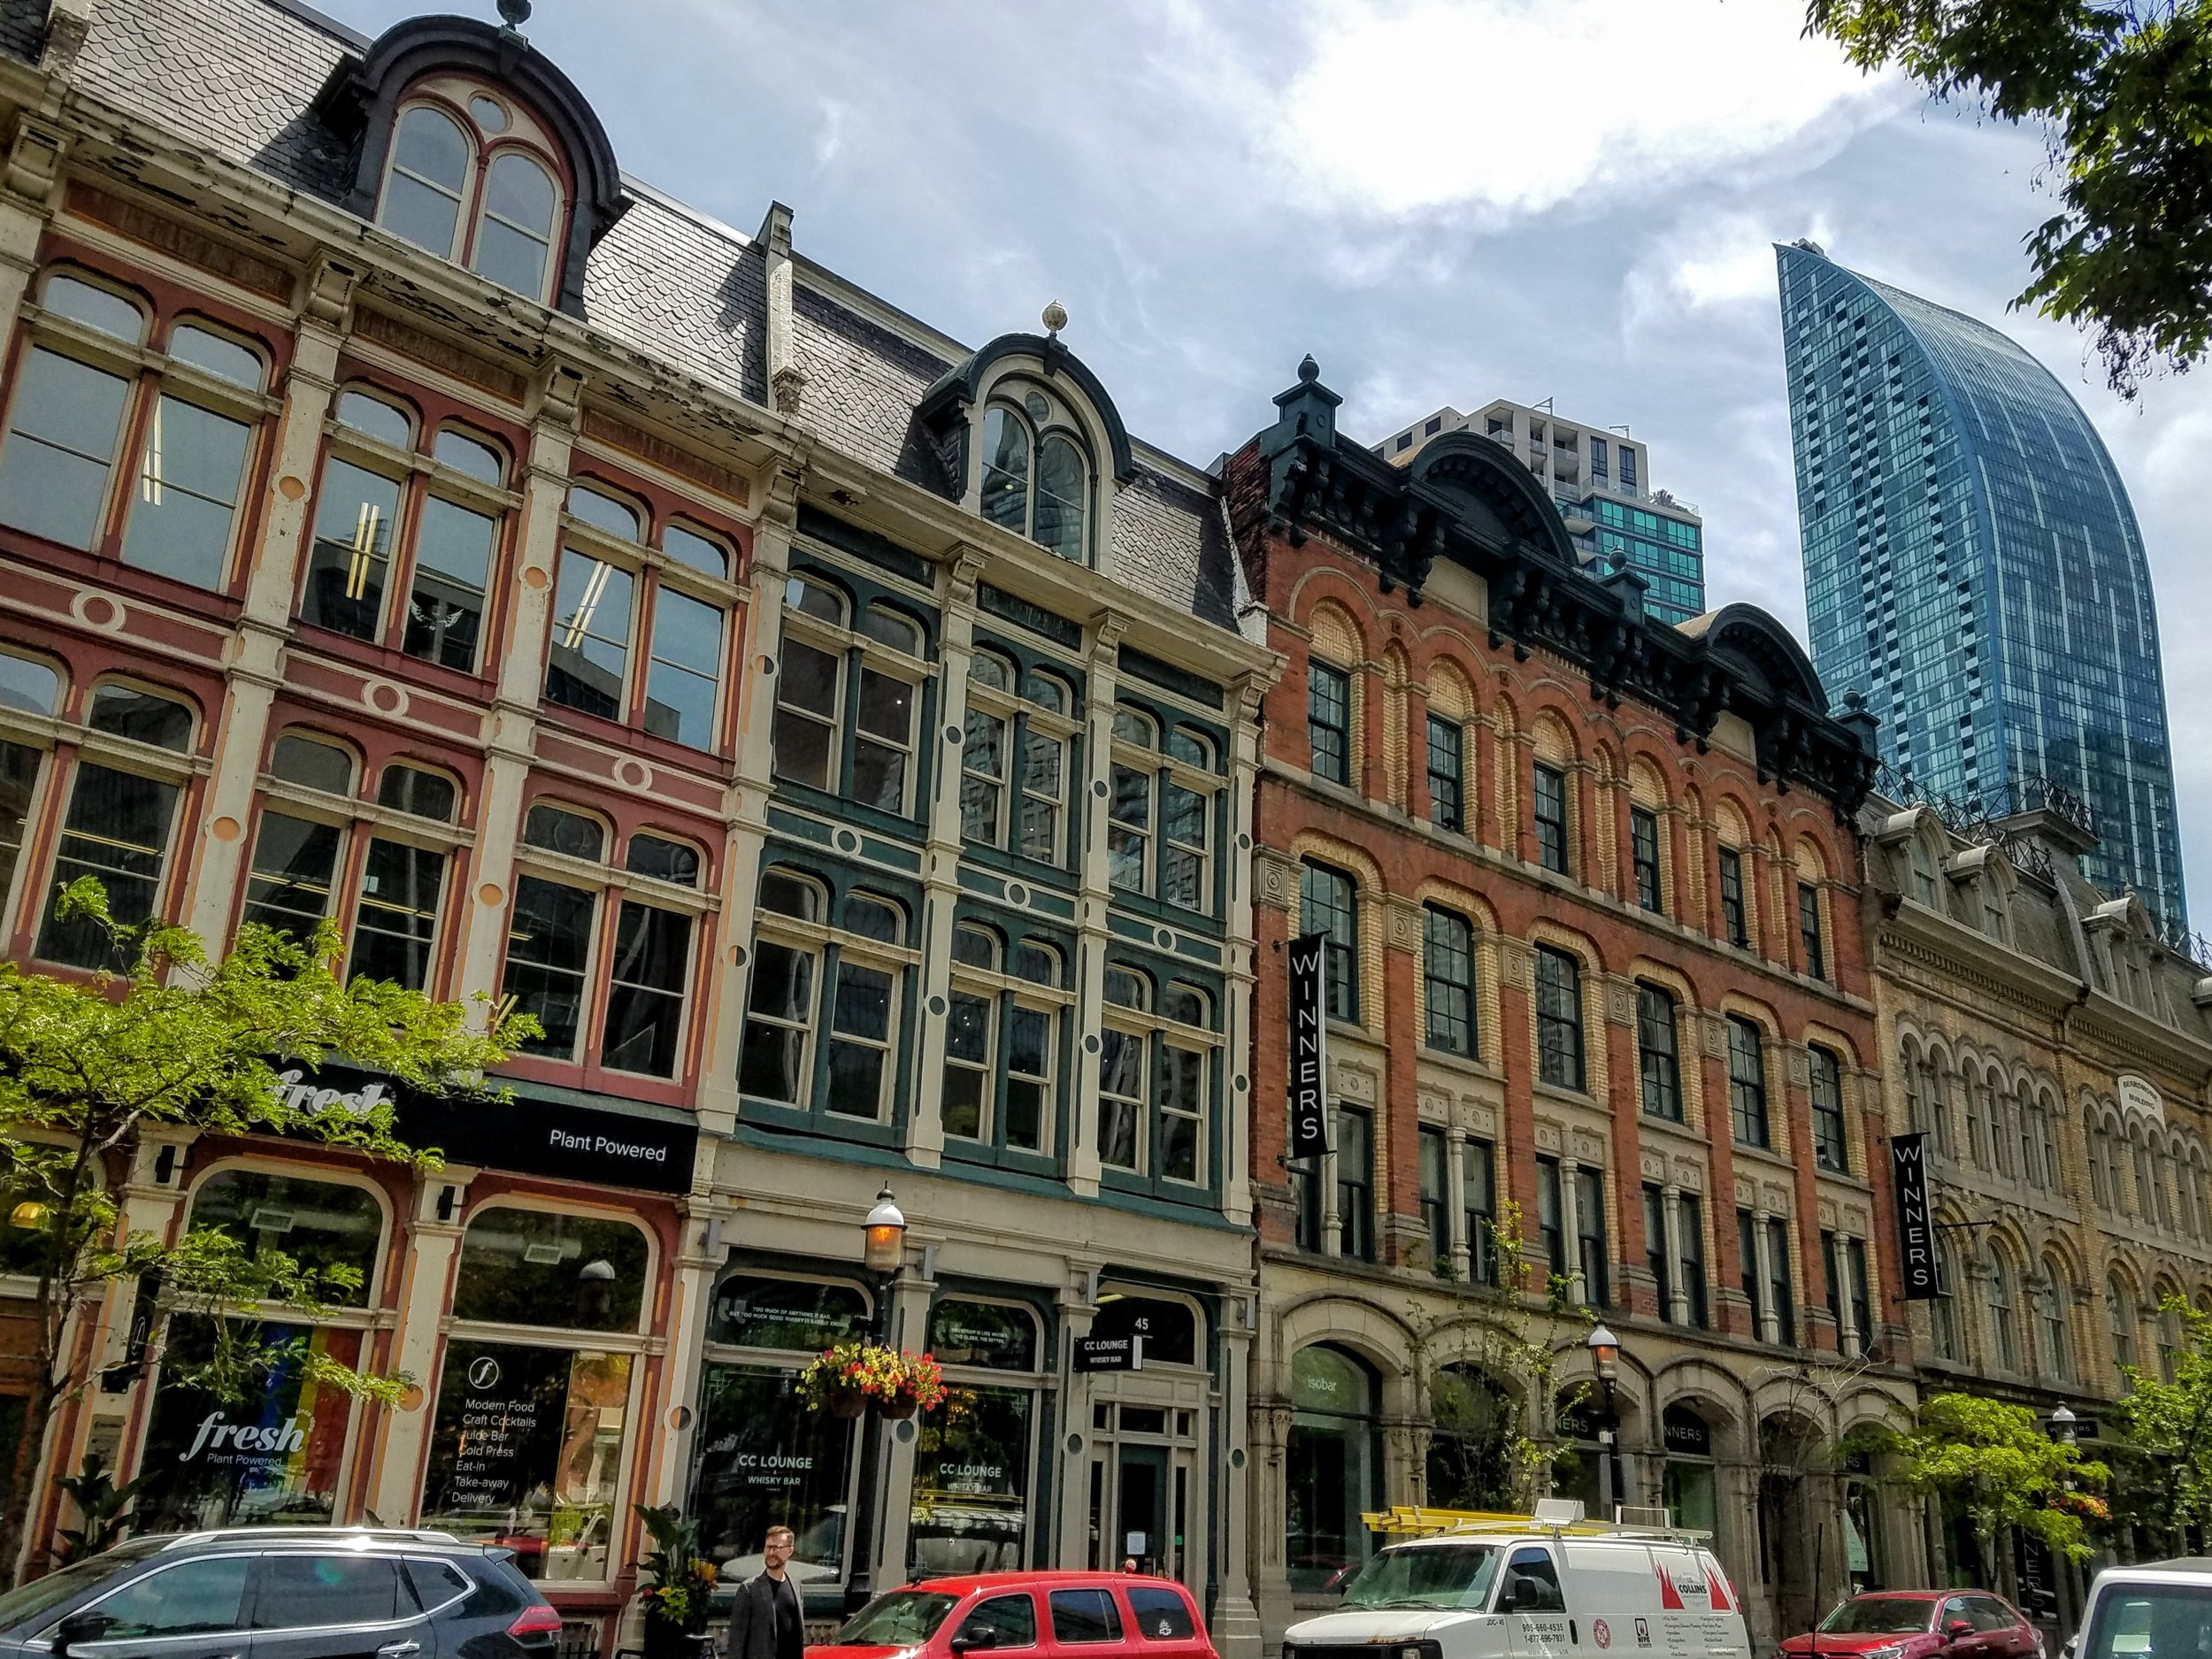 The older buildings in the Historic Distillery District